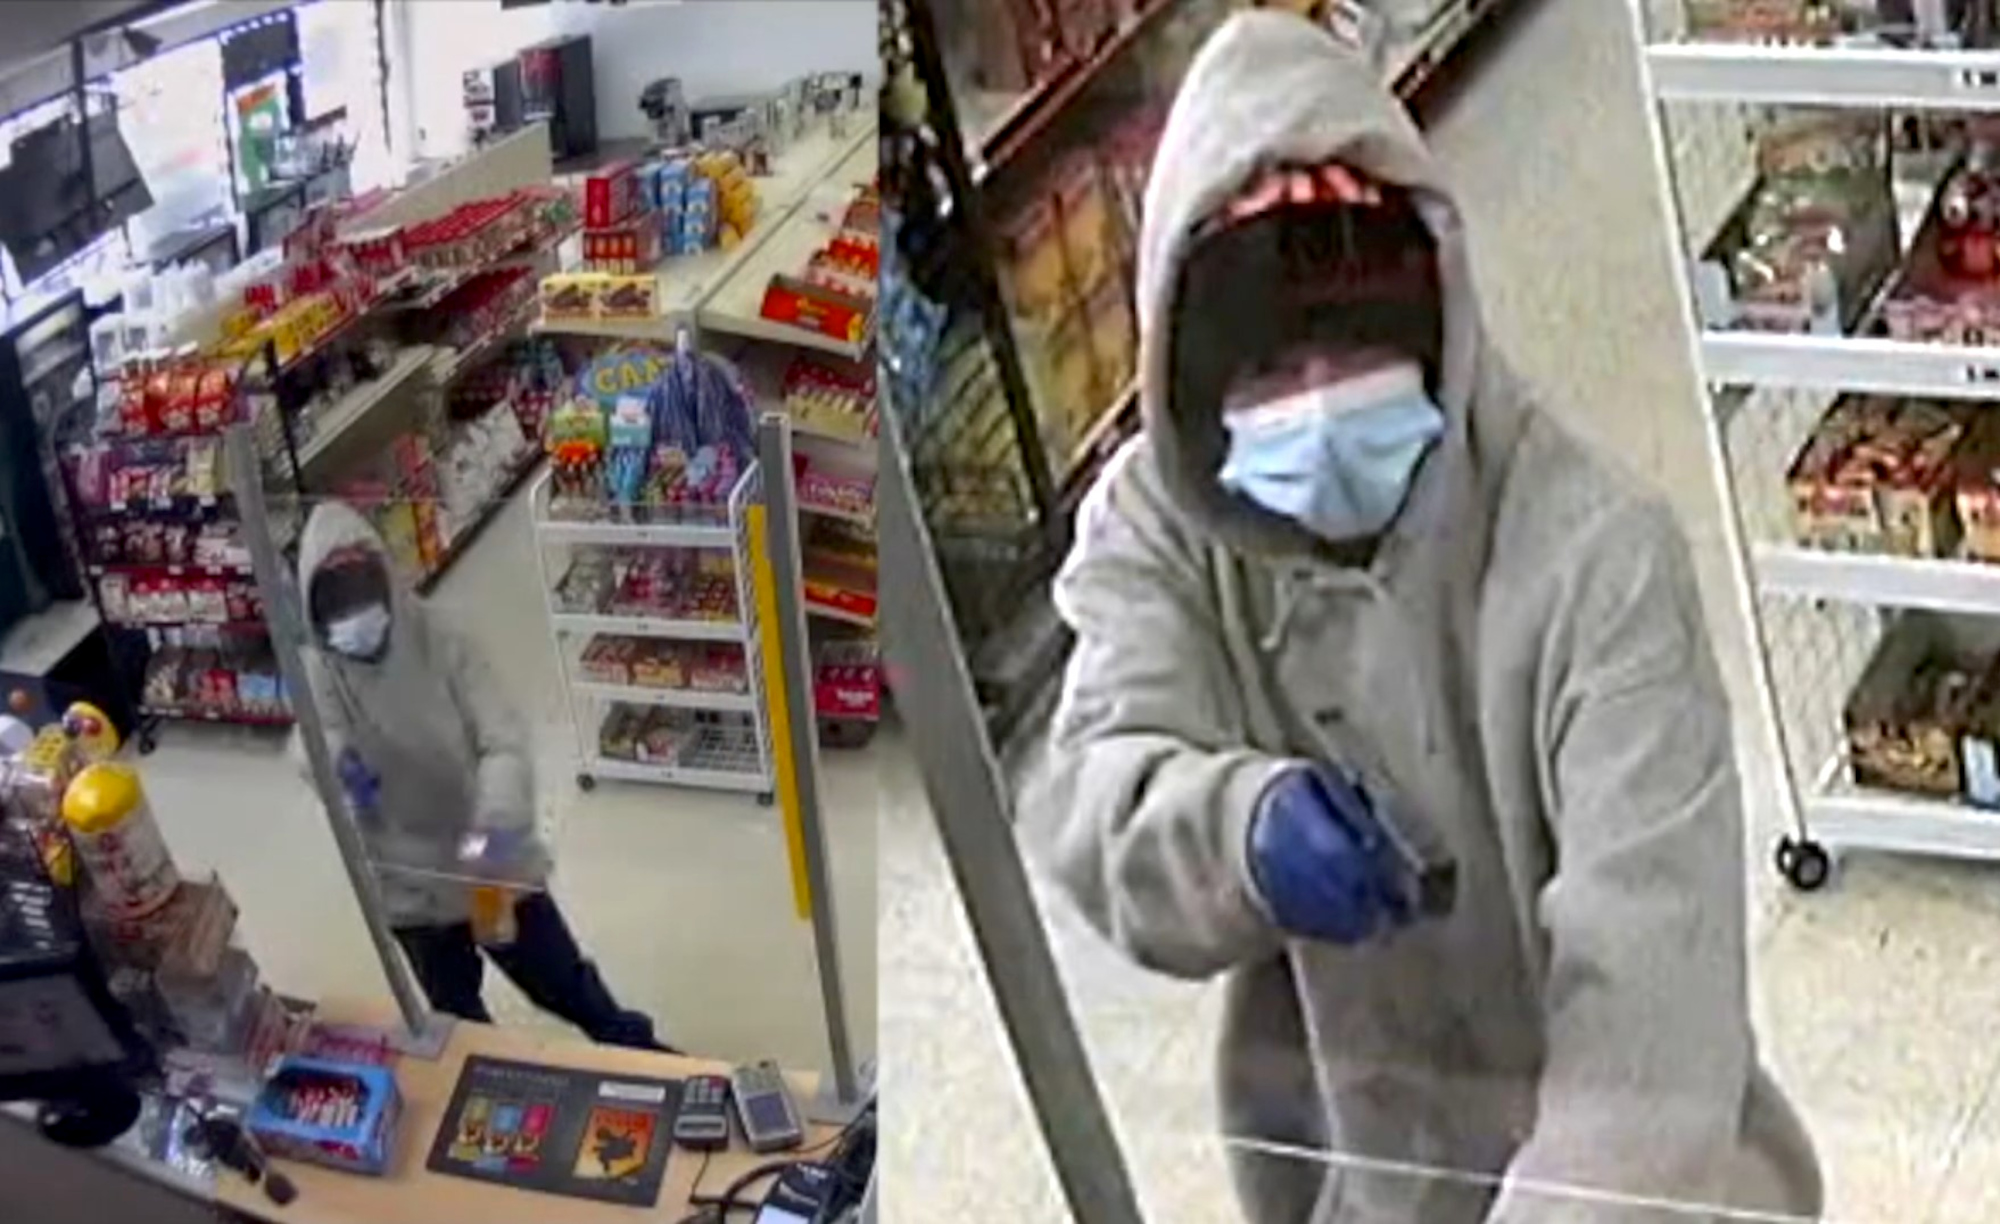 Bullets Fly During Convenience Store Robbery